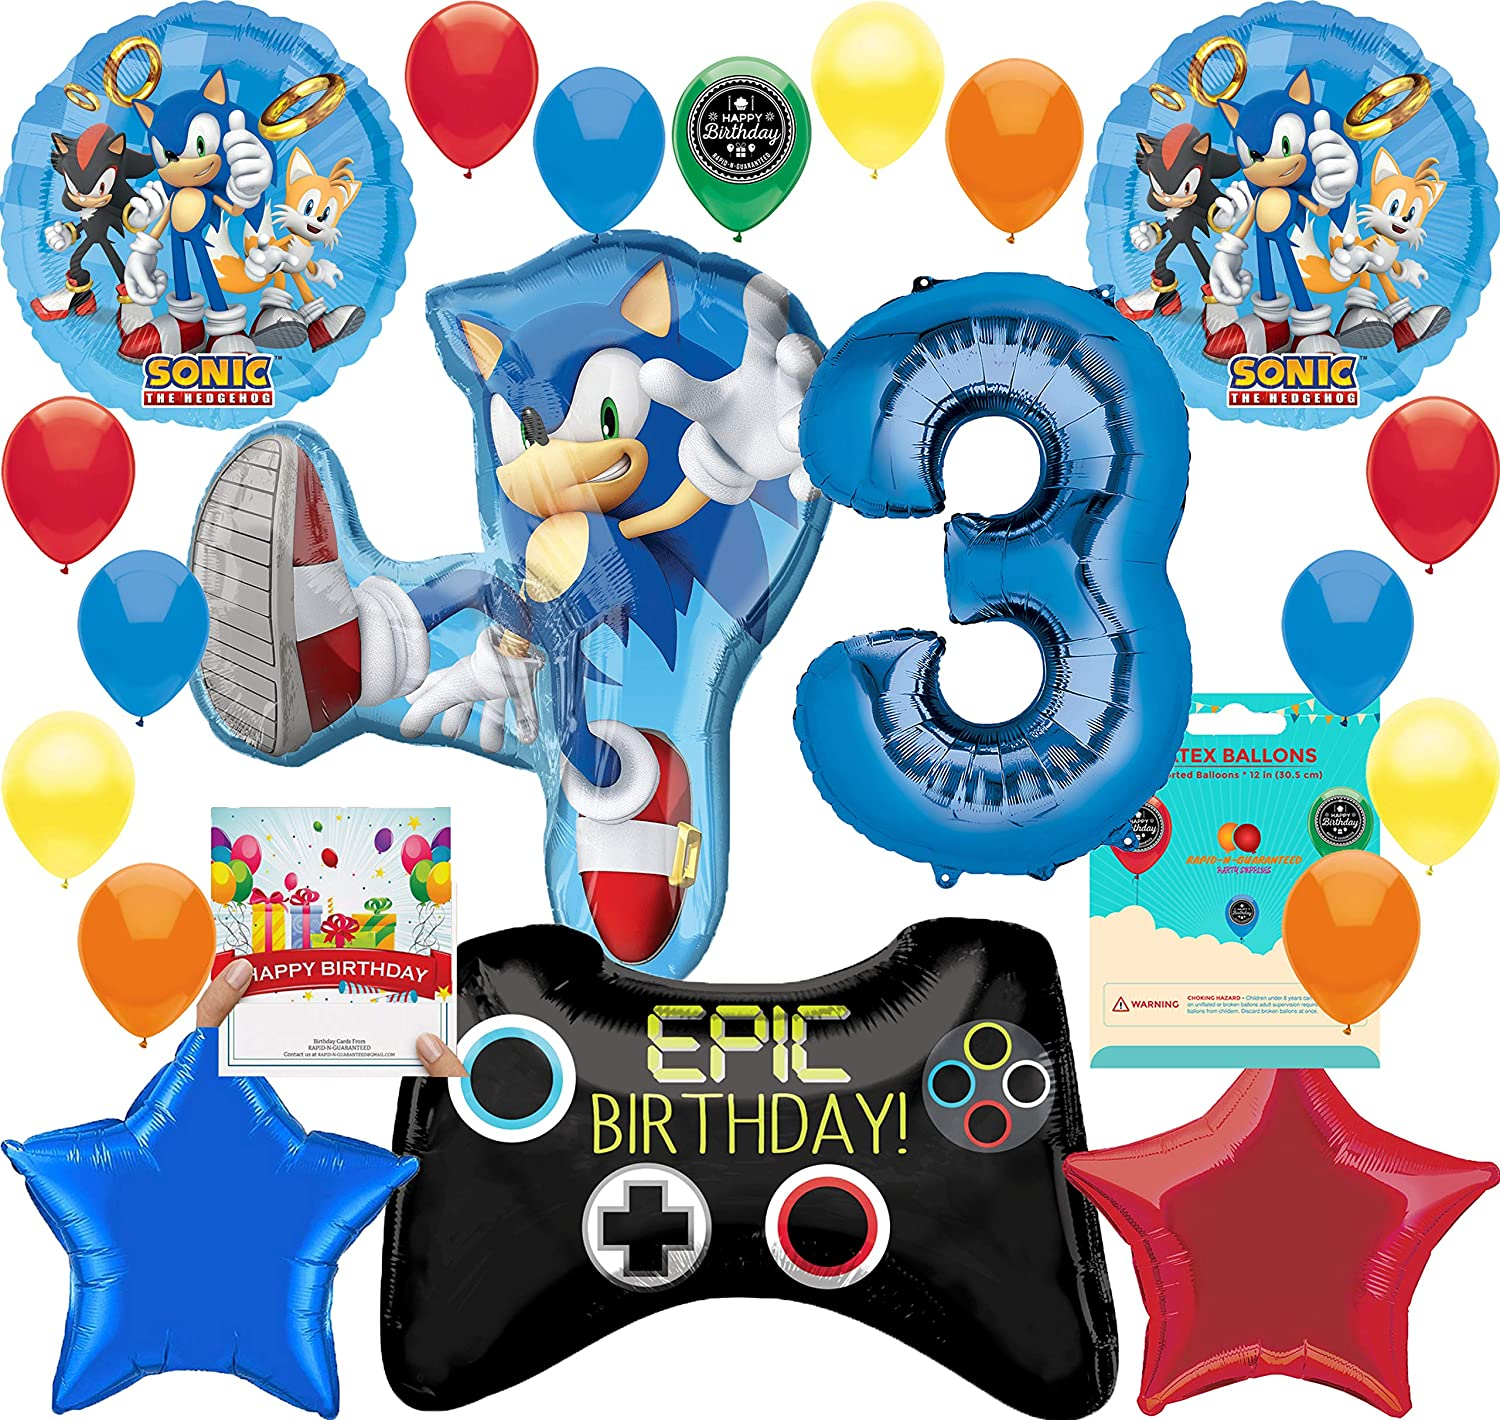 Gamers Game On Epic Party Supplies Controller Birthday Balloon Decorations Bu...